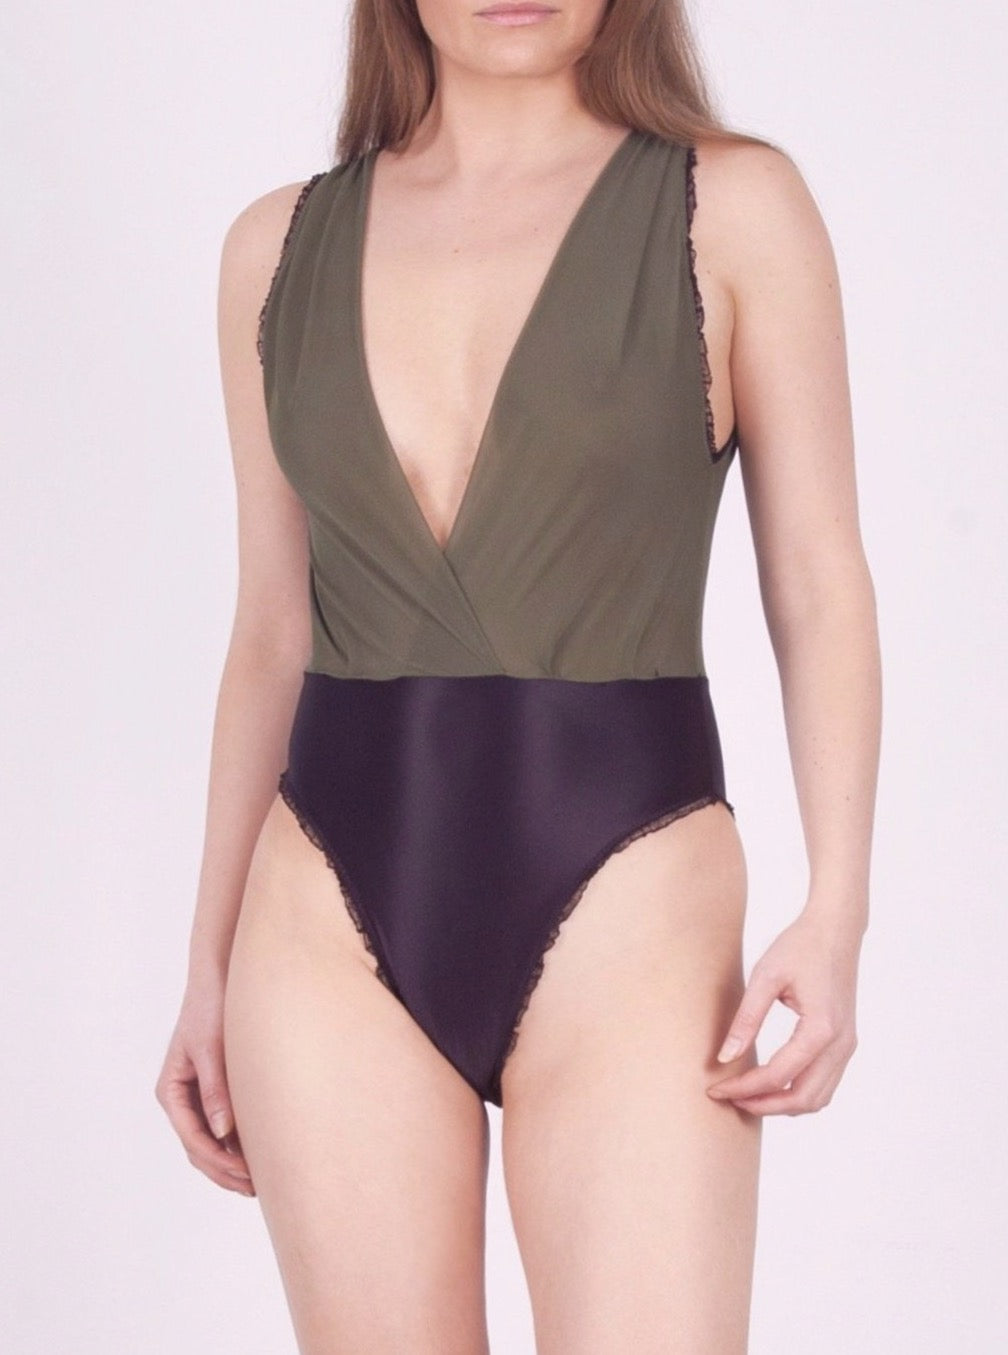 St Lucia military bodysuit